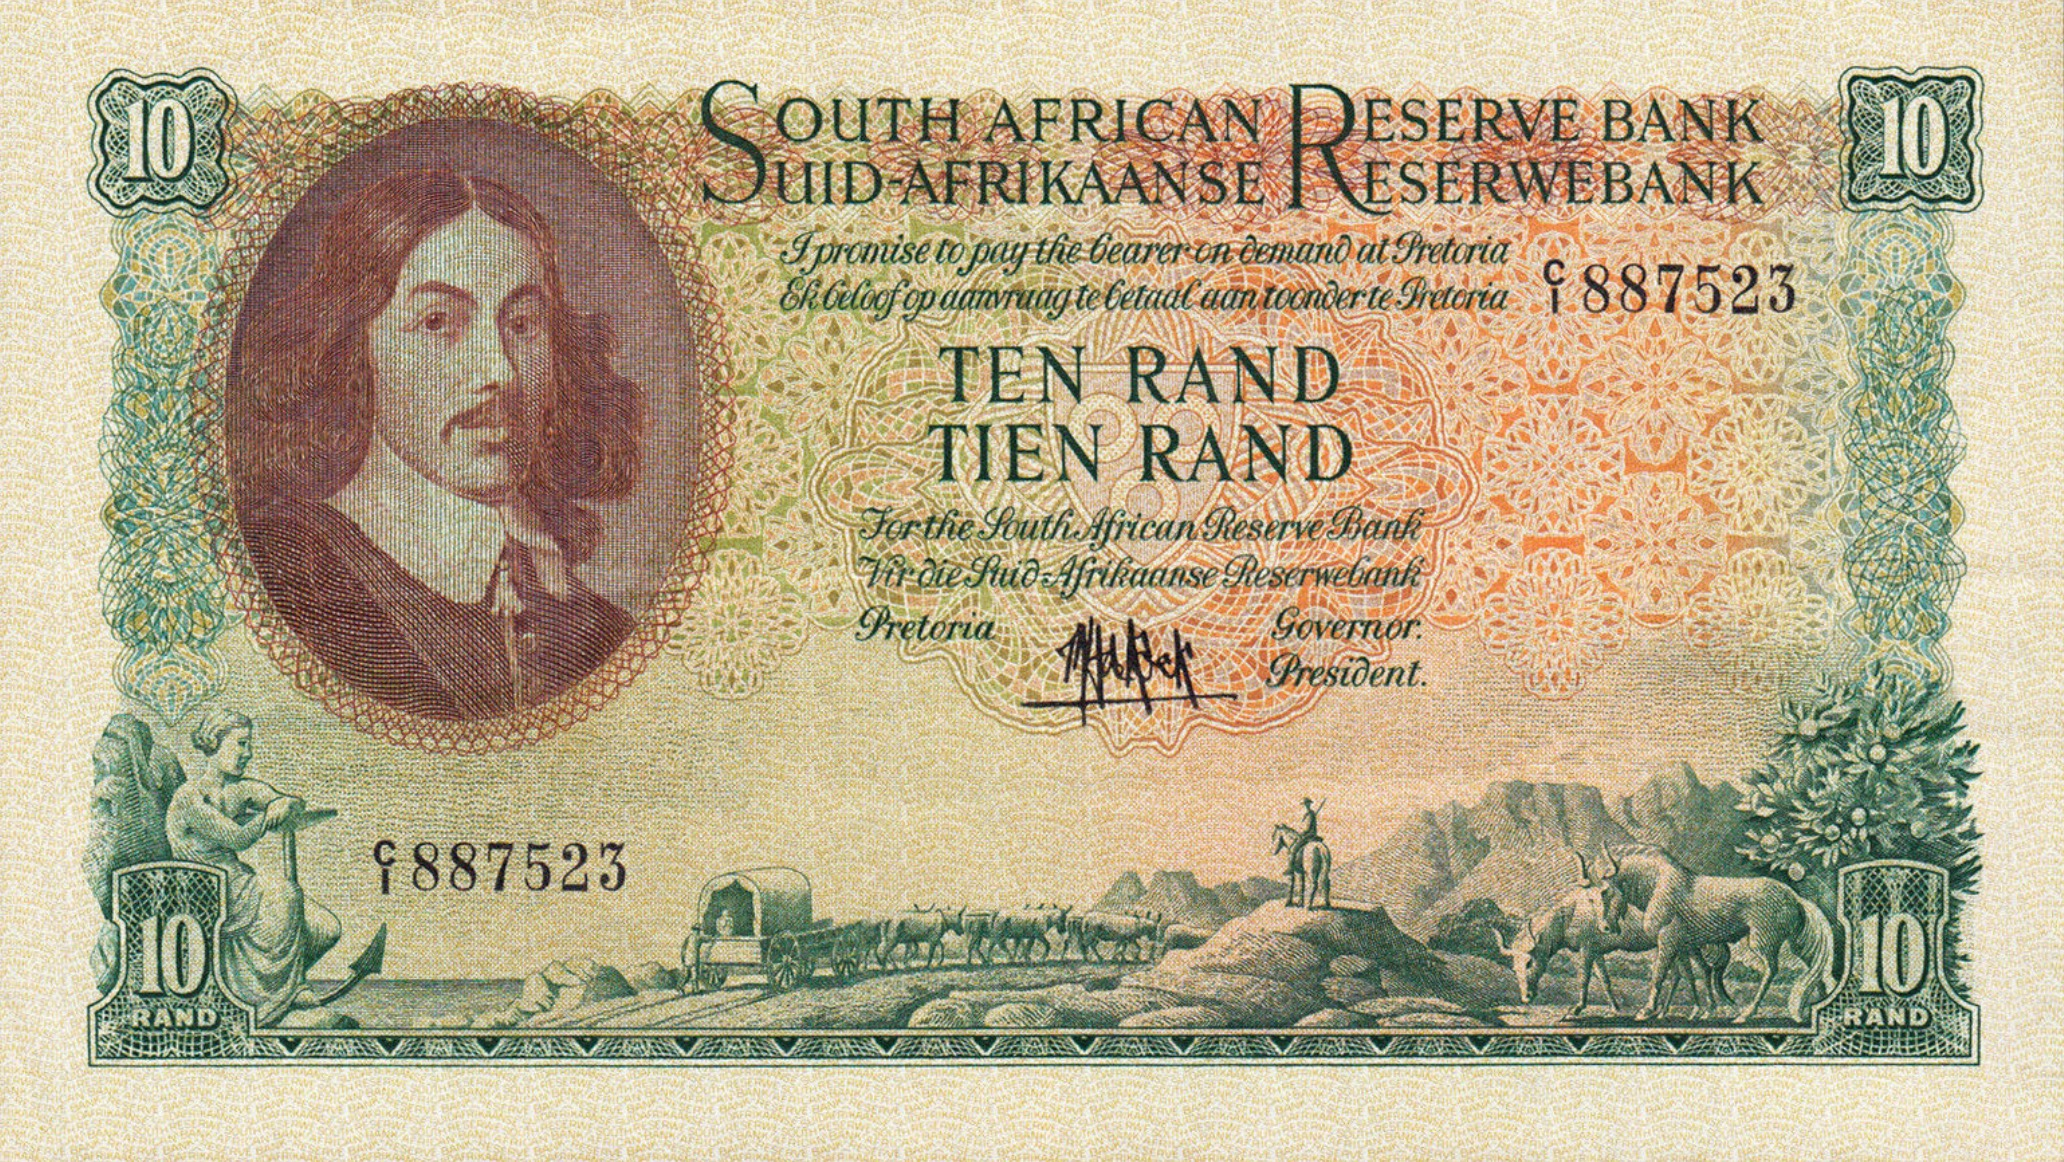 10 South African Rand banknote (van Riebeeck large type)